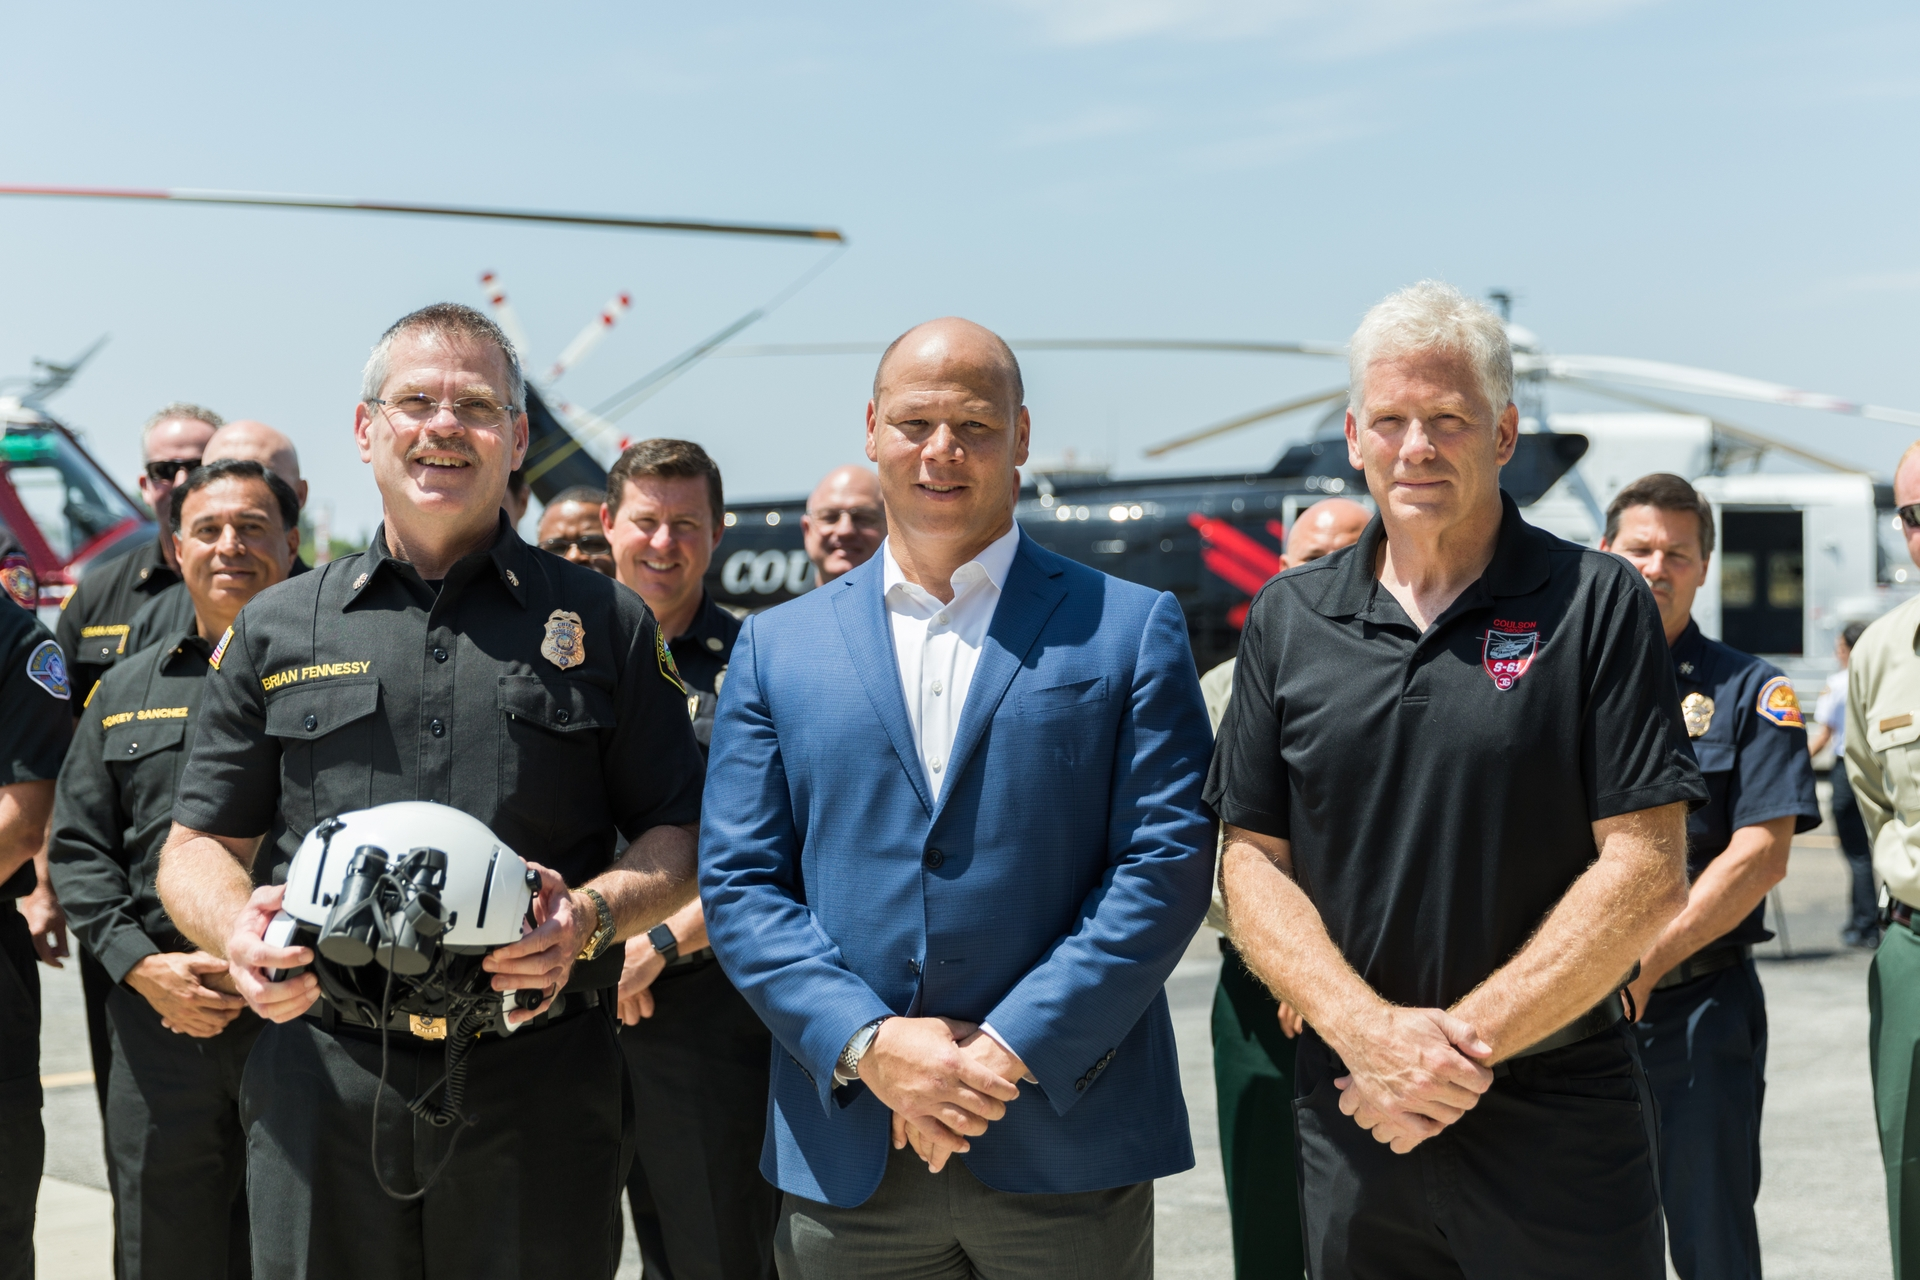 OCFA Fire Chief Brian Fennessy (left), Chris Thompson, SCE vice president of Local Public Affairs (center) and Wayne Coulson, CEO and president of Coulson Aviation, at an event announcing a water-dropping helicopter pilot project.